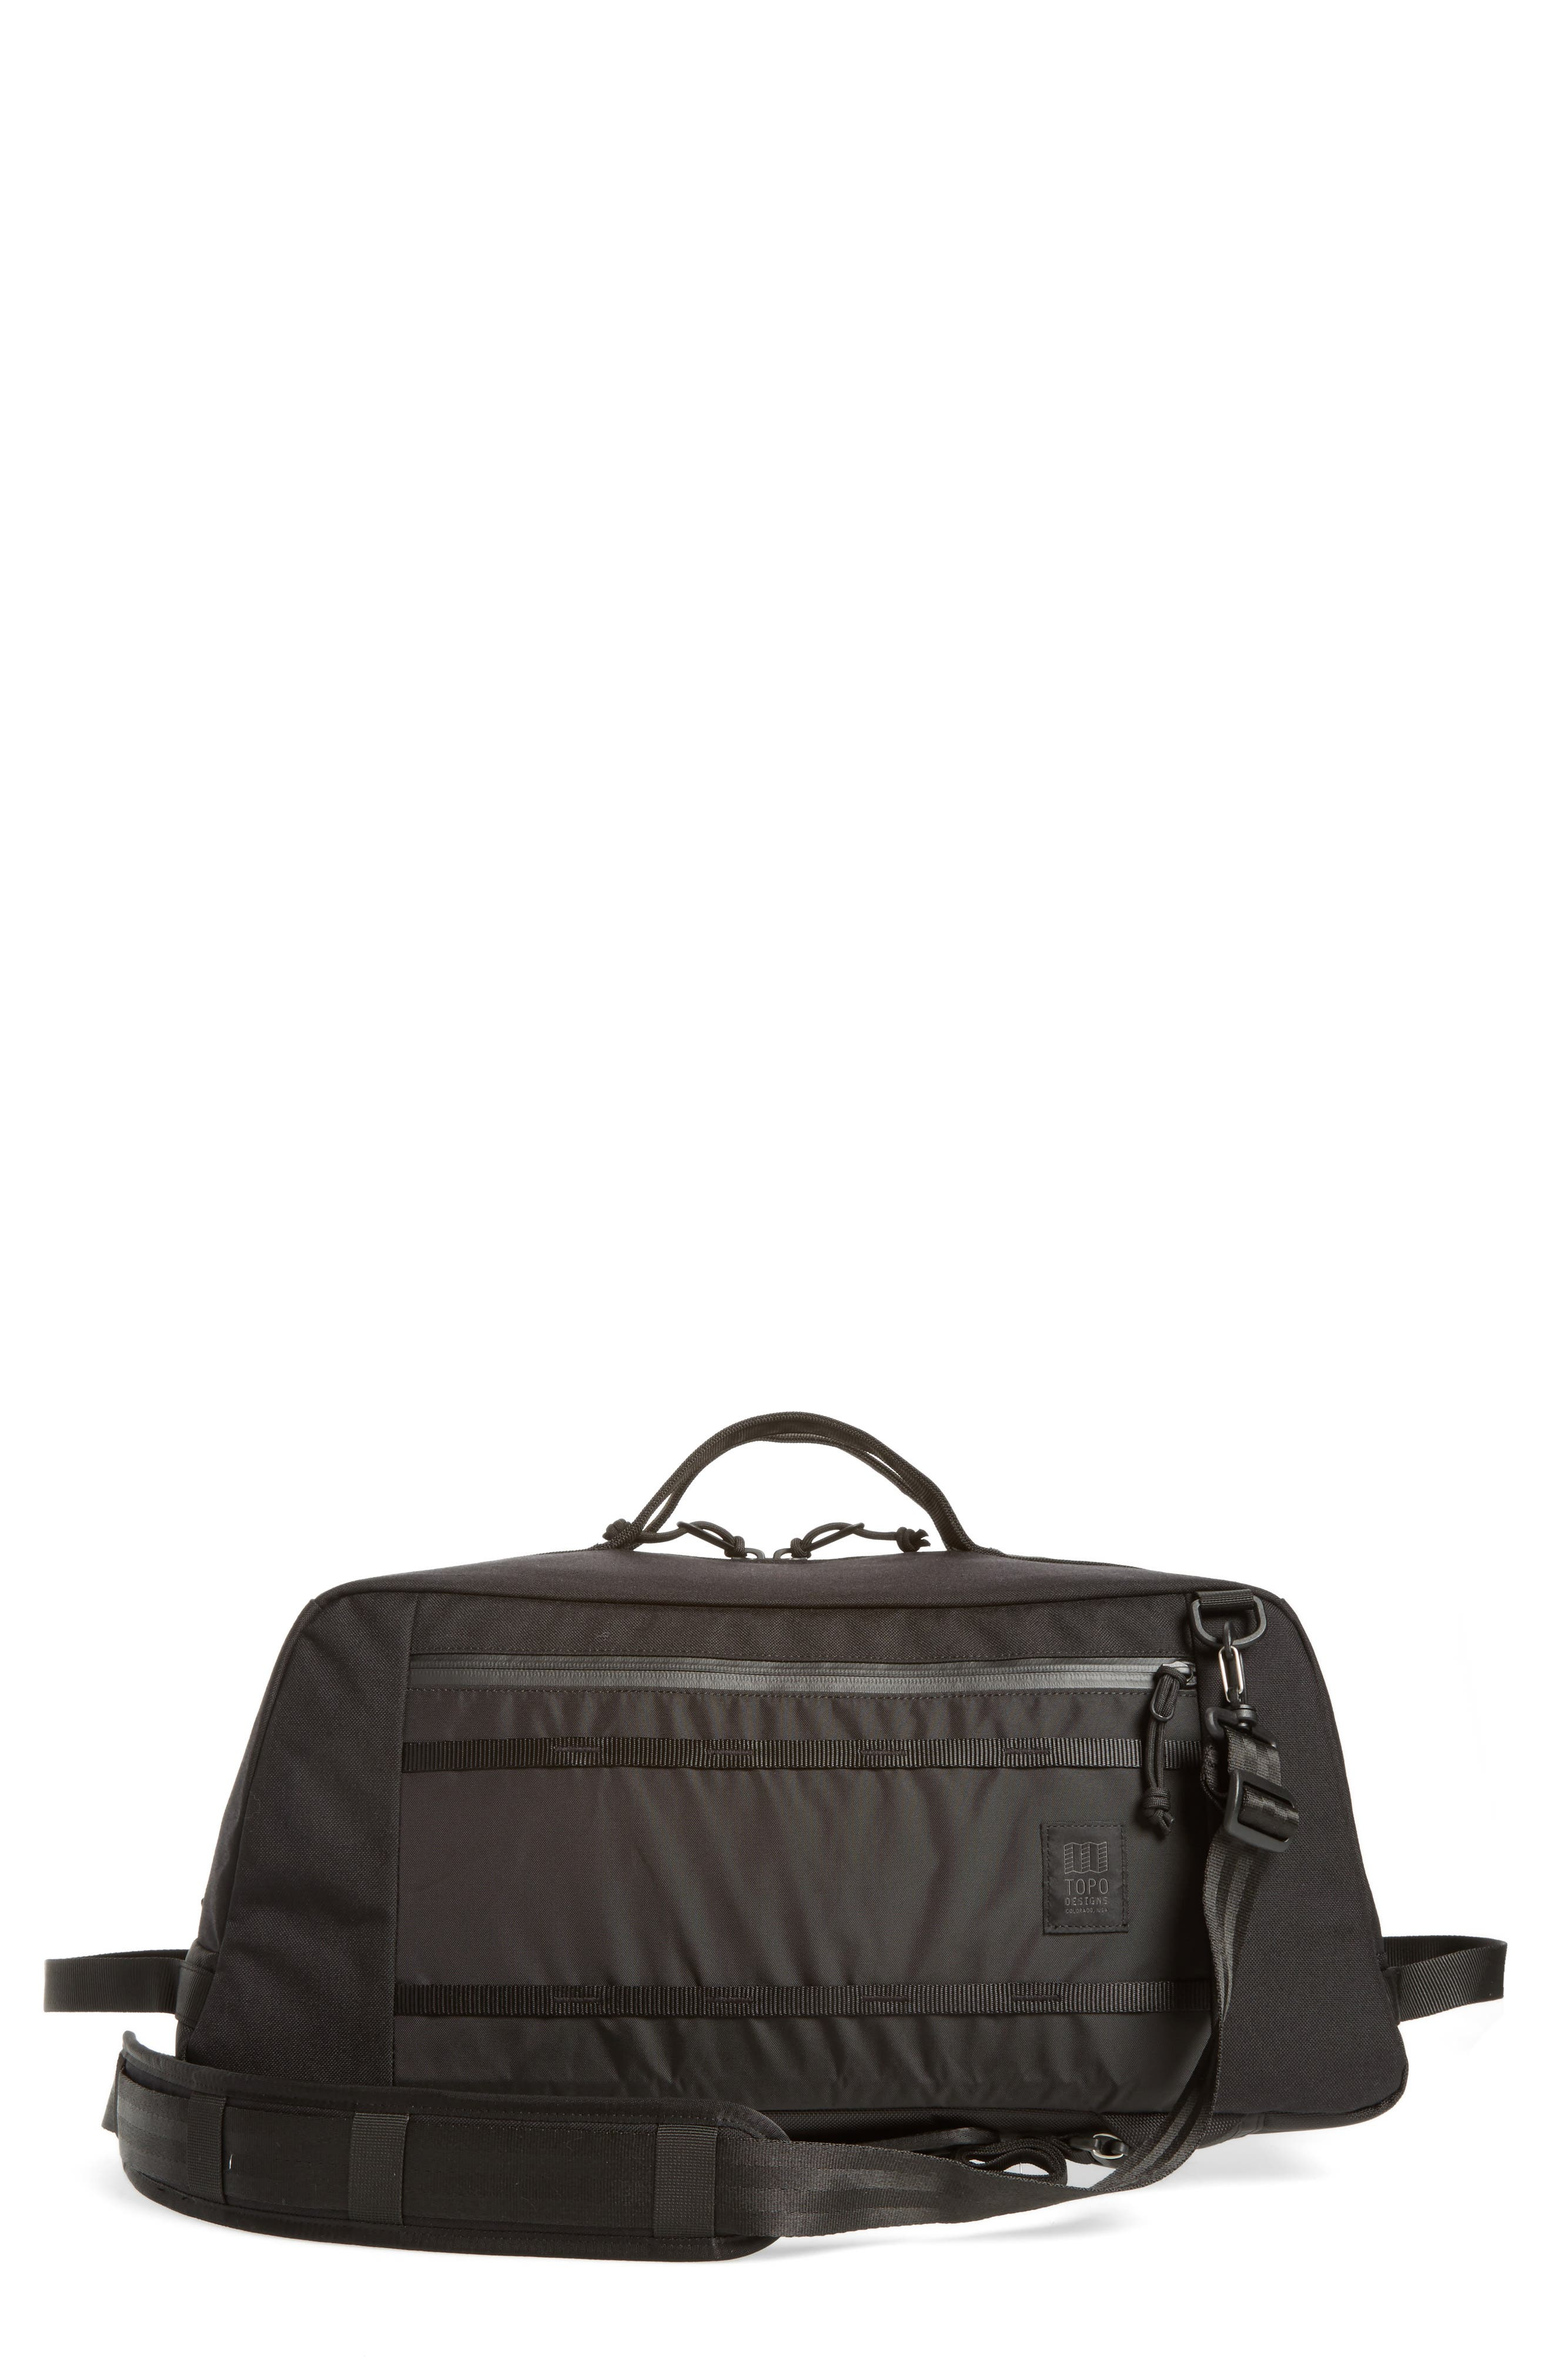 TOPO DESIGNS MOUNTAIN CONVERTIBLE DUFFEL BAG - BLACK